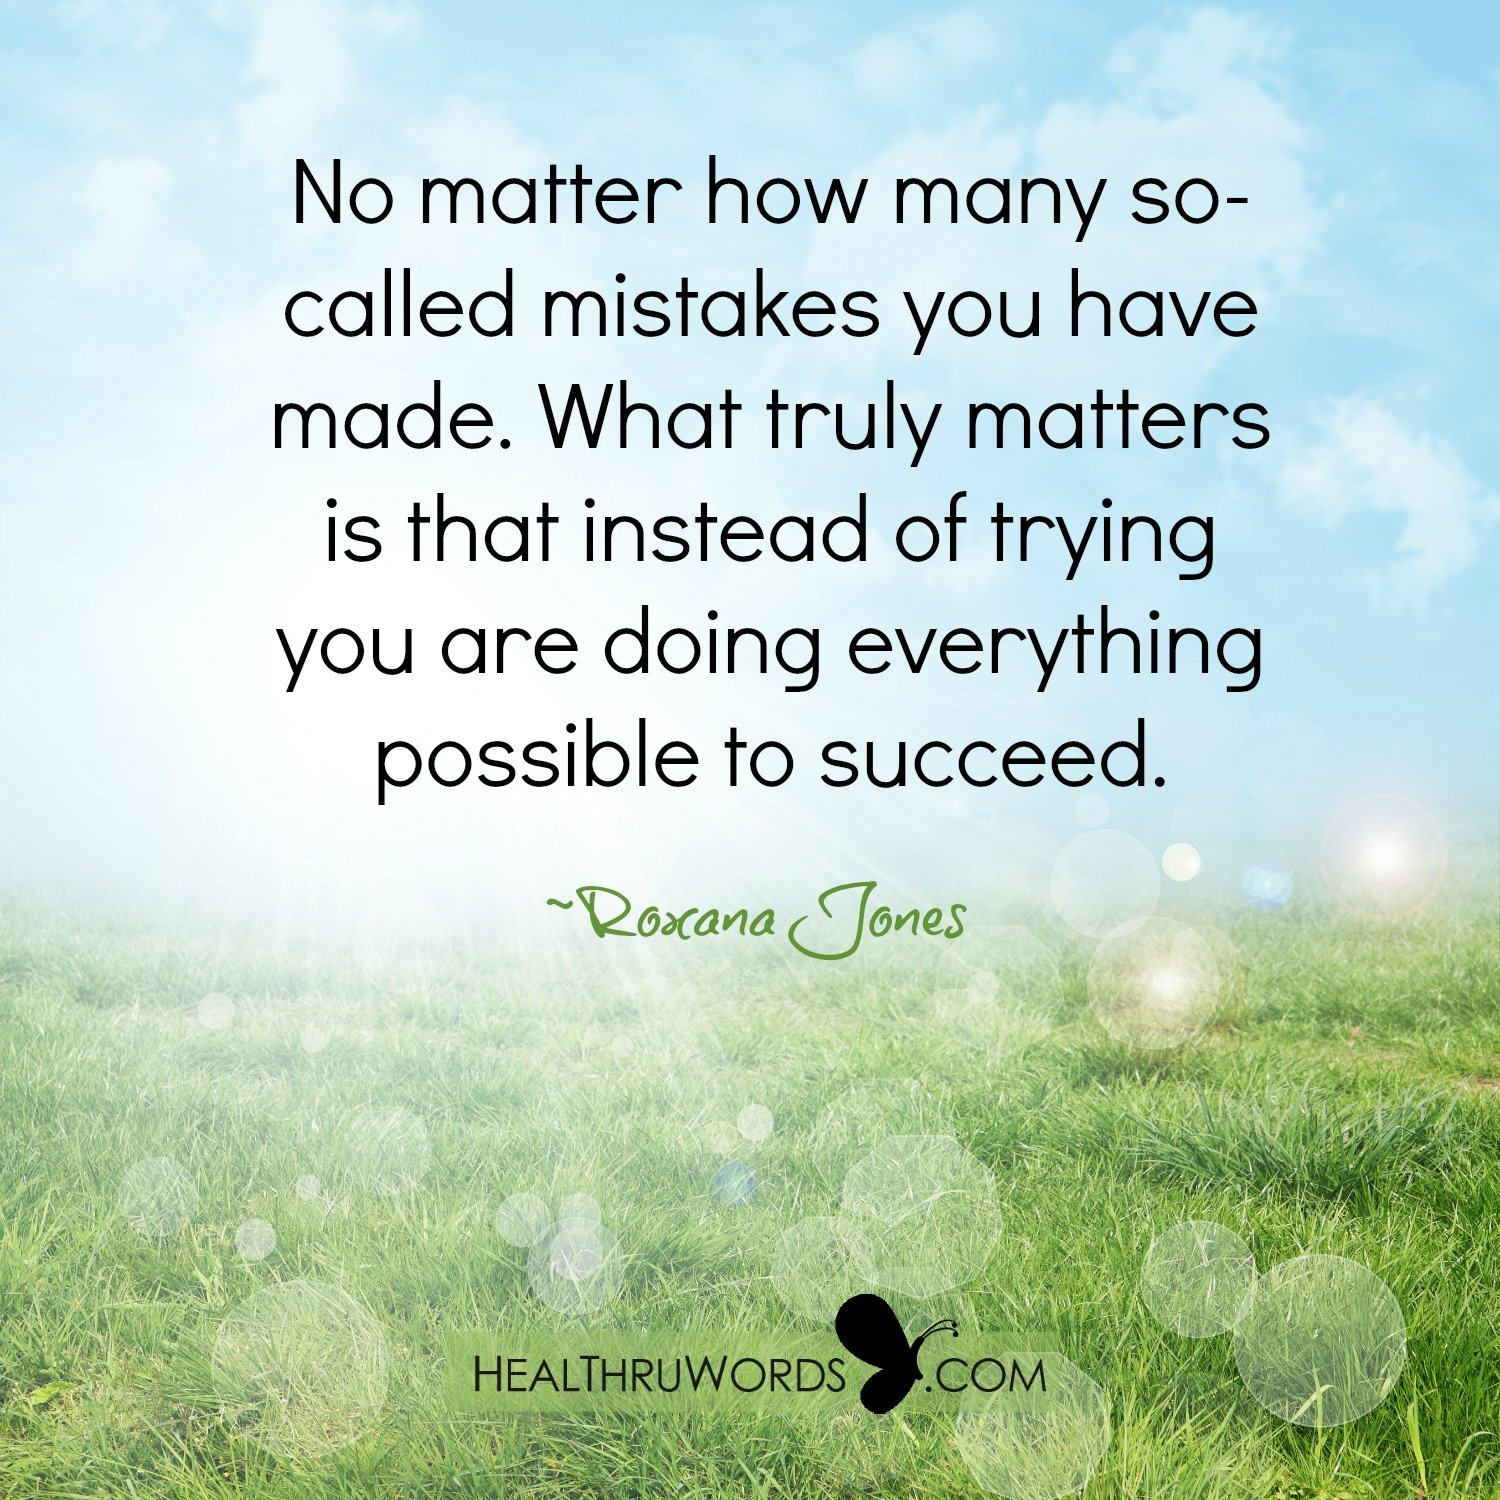 Inspirational Image: Doing not Trying